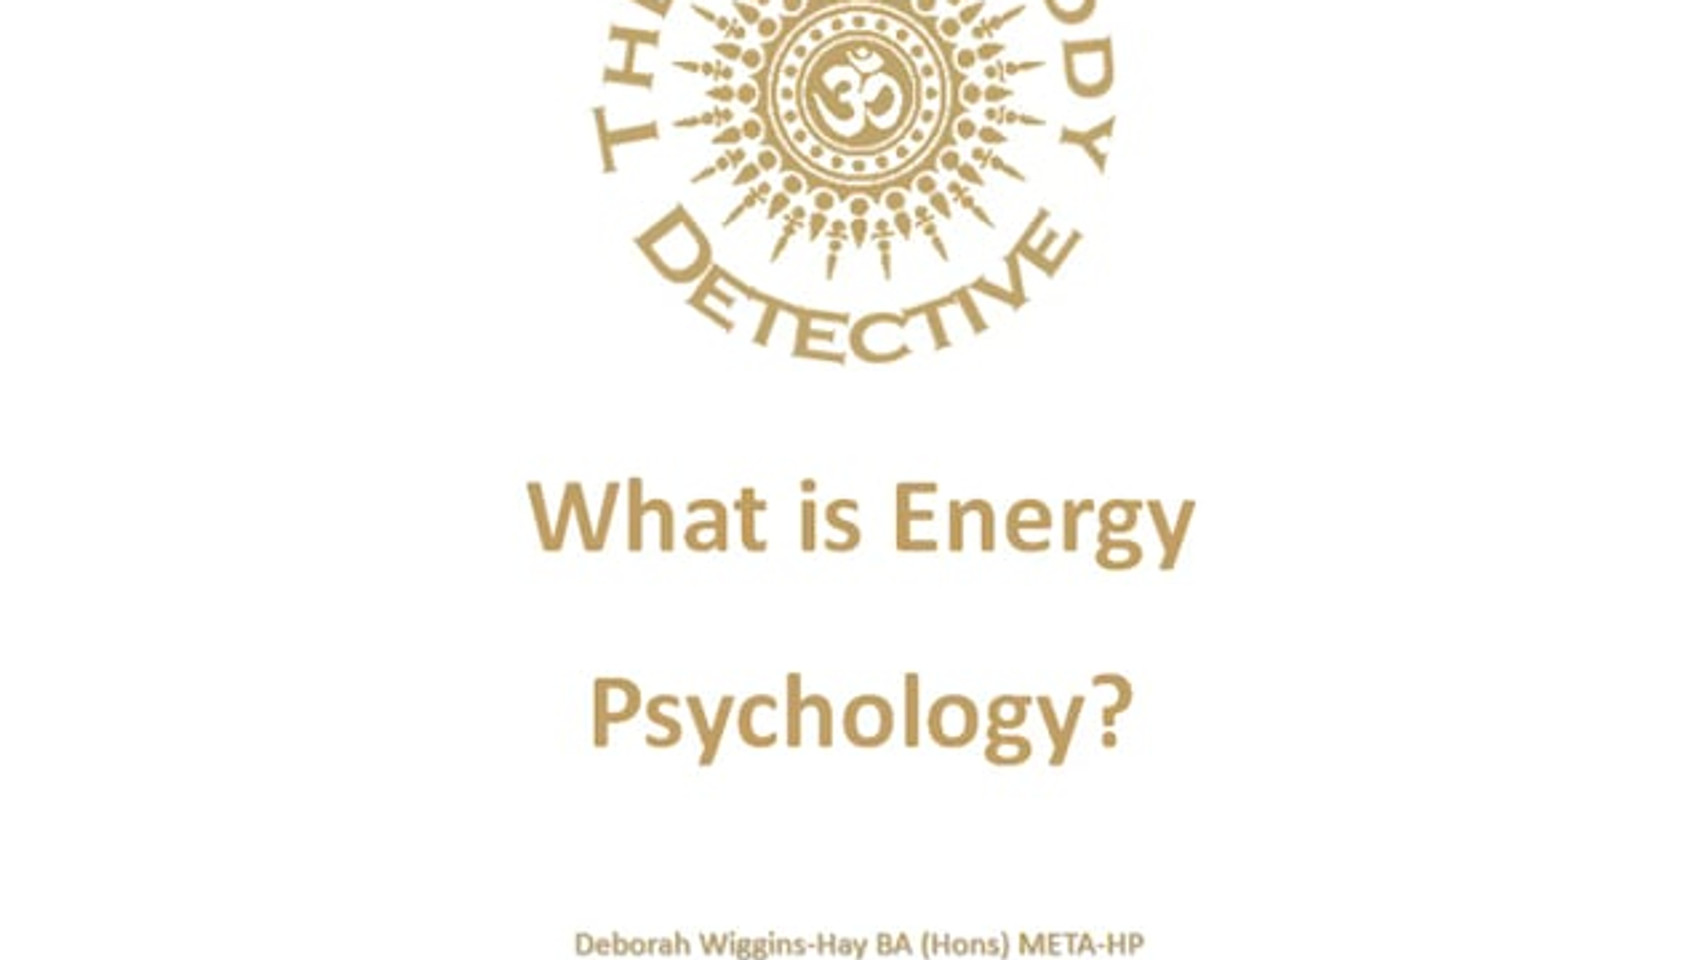 What is Energy Psychology?